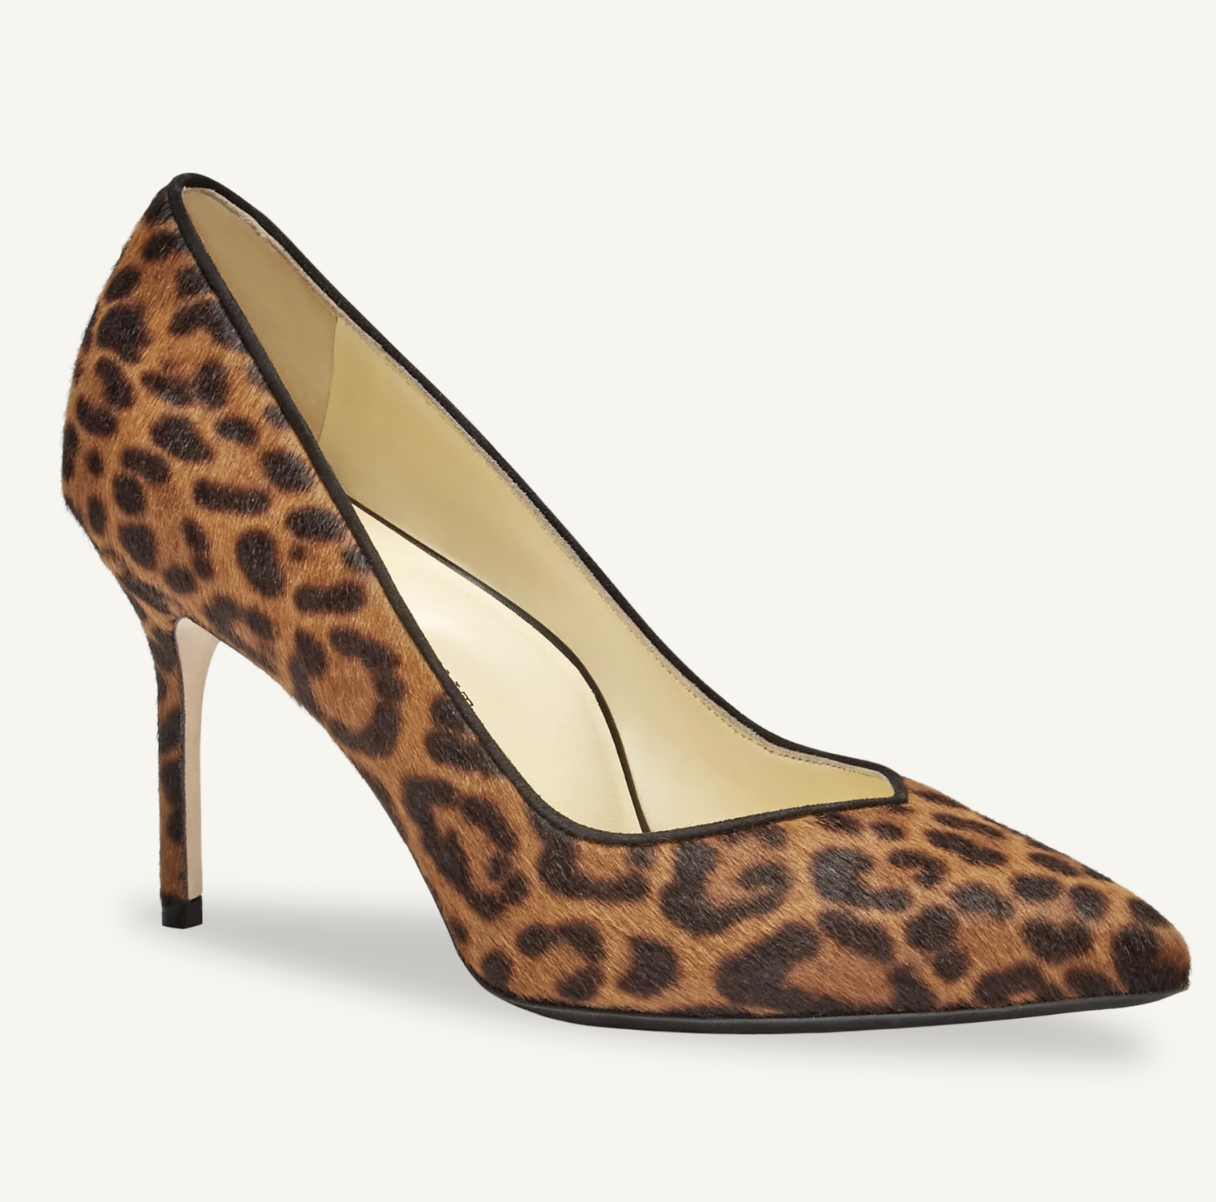 Sarah Flint Perfect Pump Leopard Calfhair